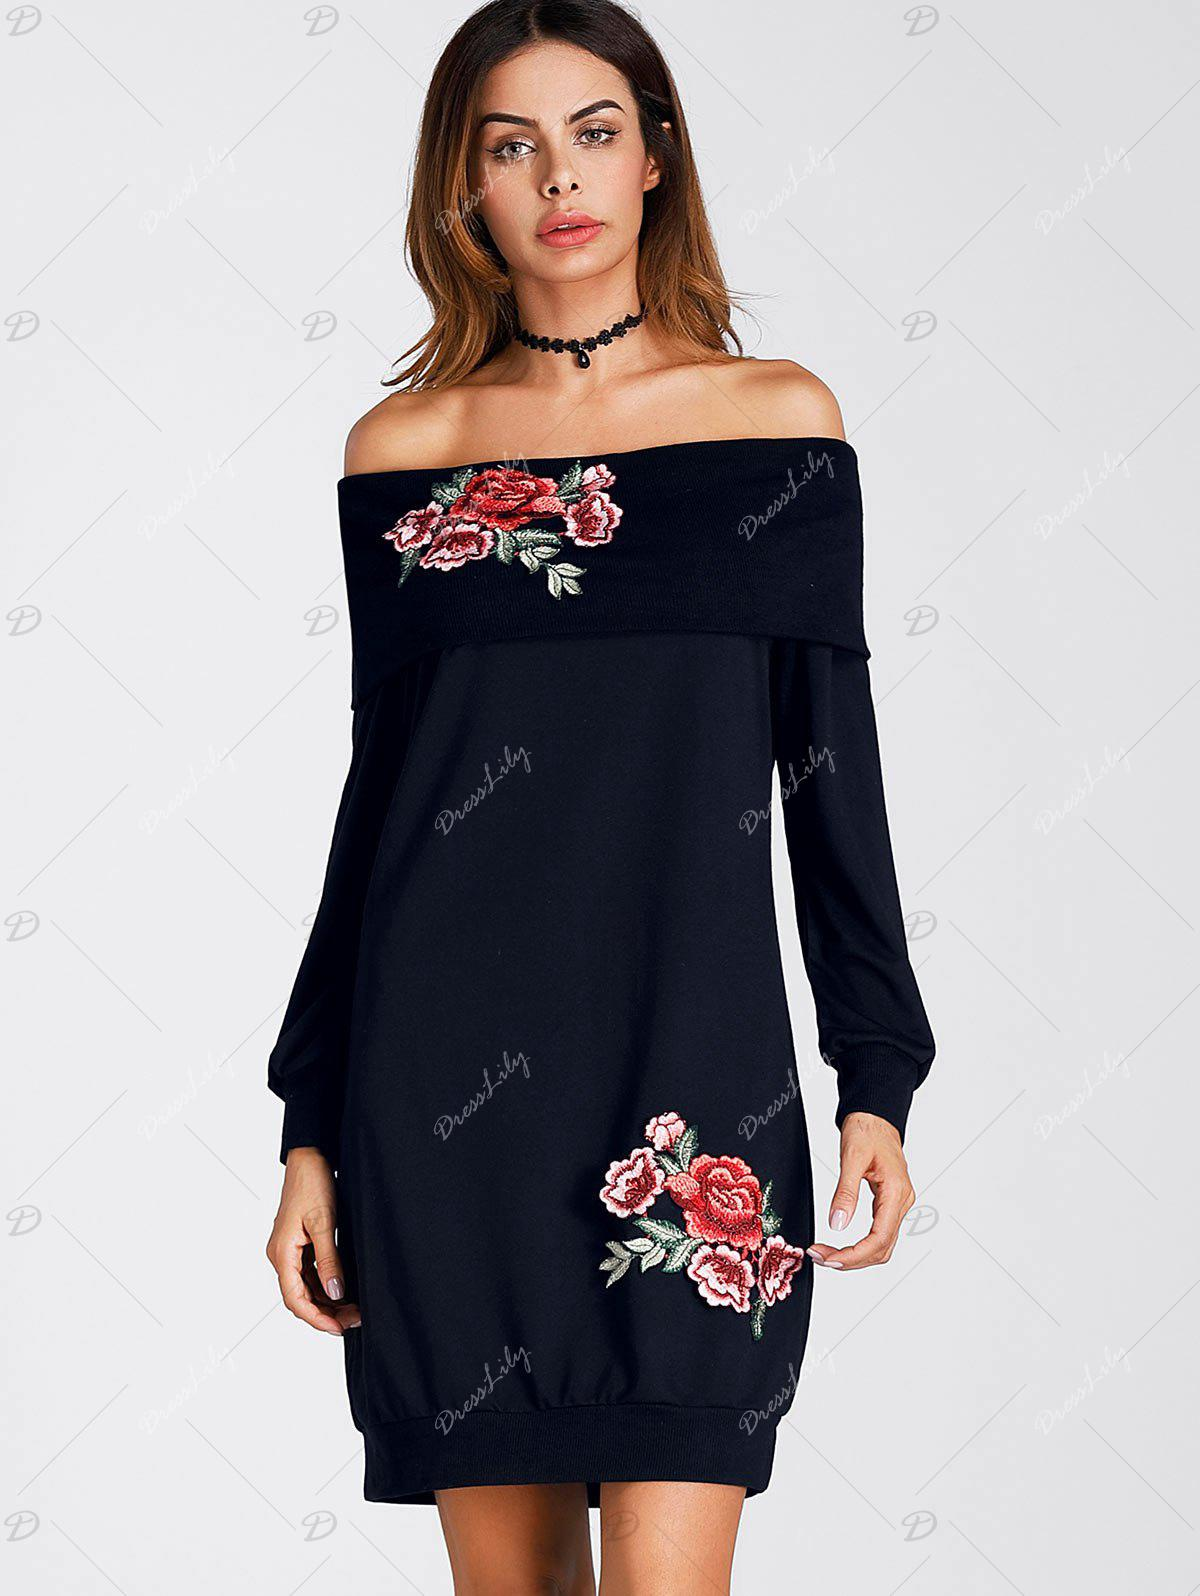 Floral Embroidered Off The Shoulder Mini Sweatshirt Dress - CADETBLUE M